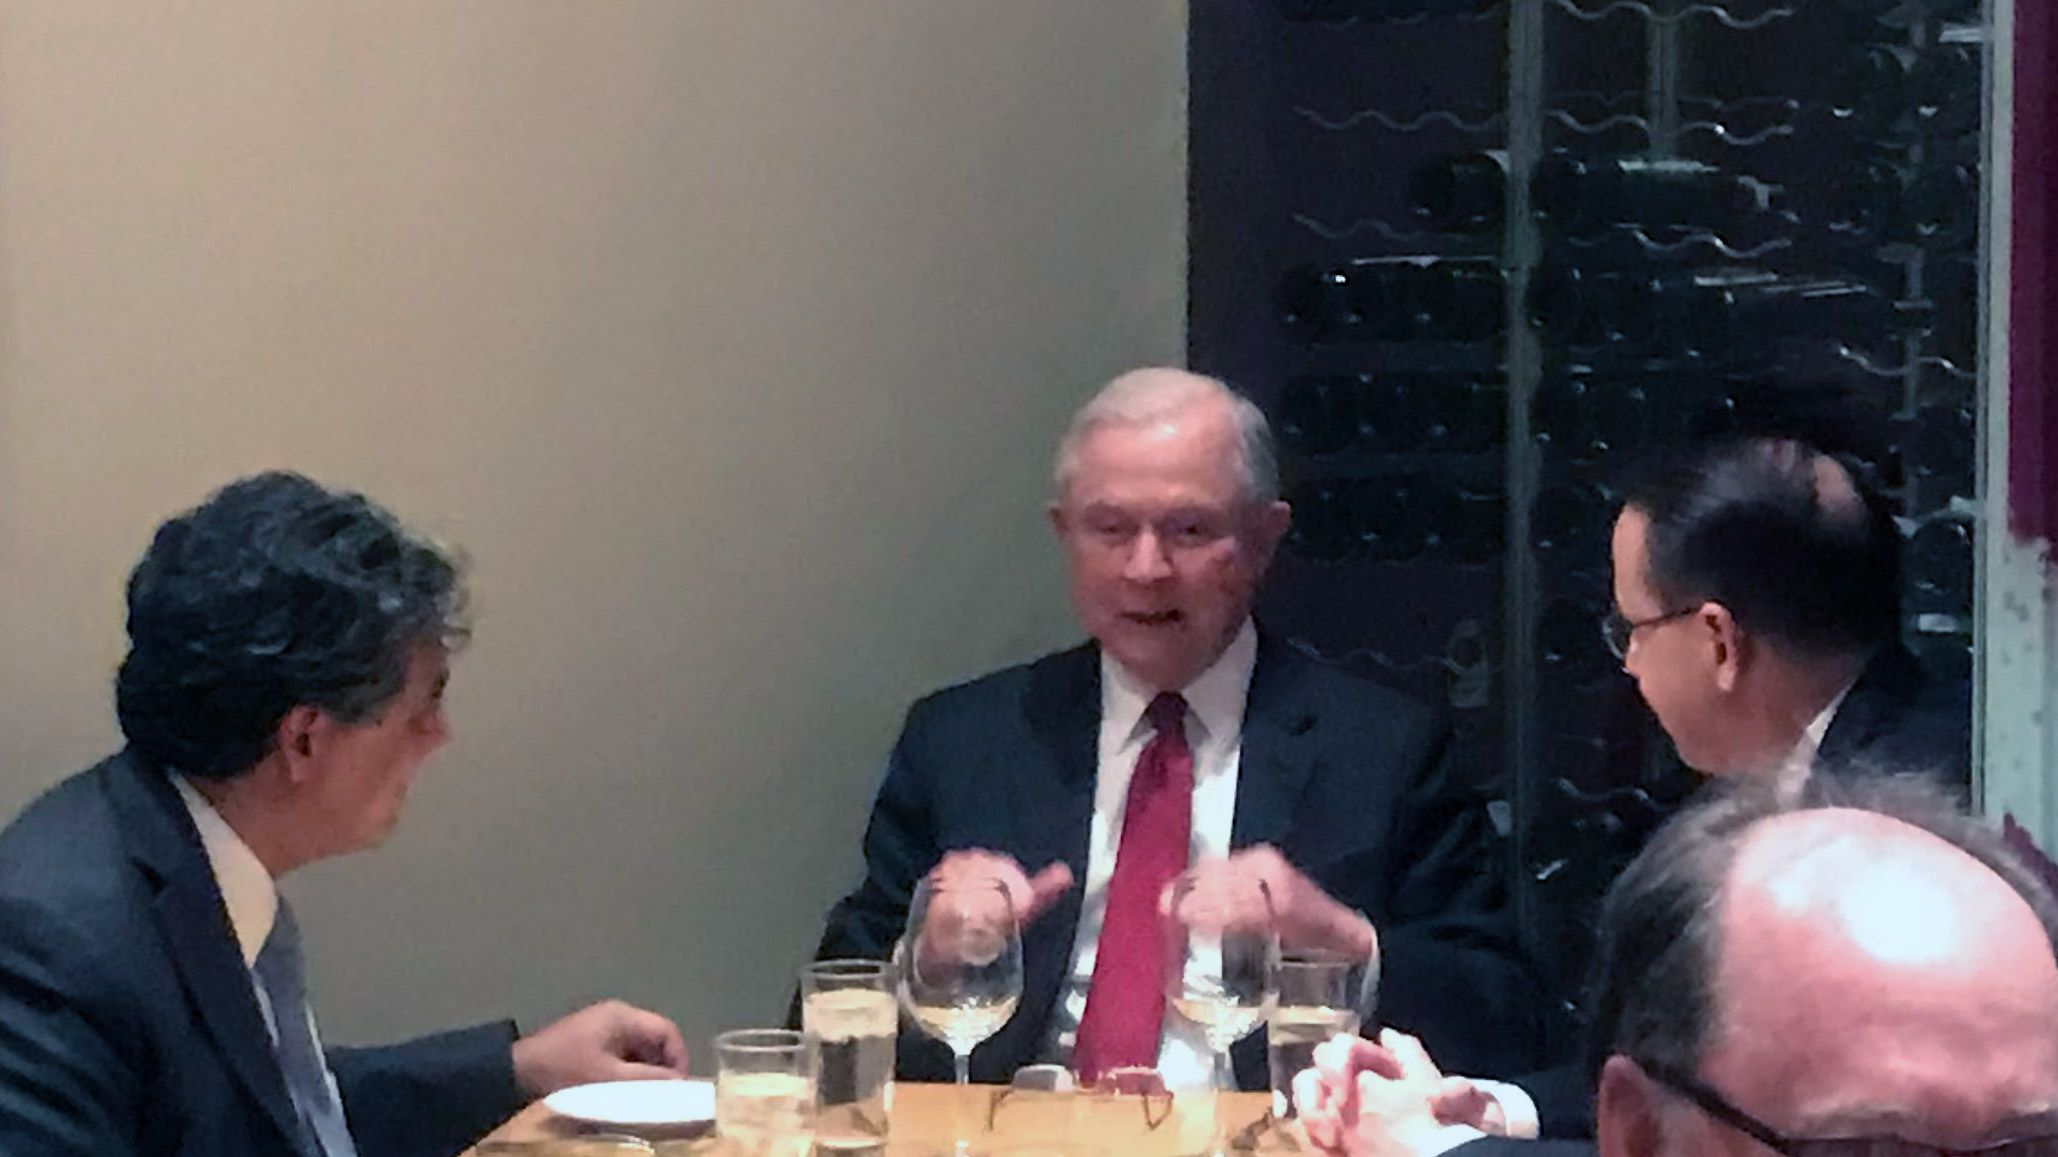 Sessions at dinner